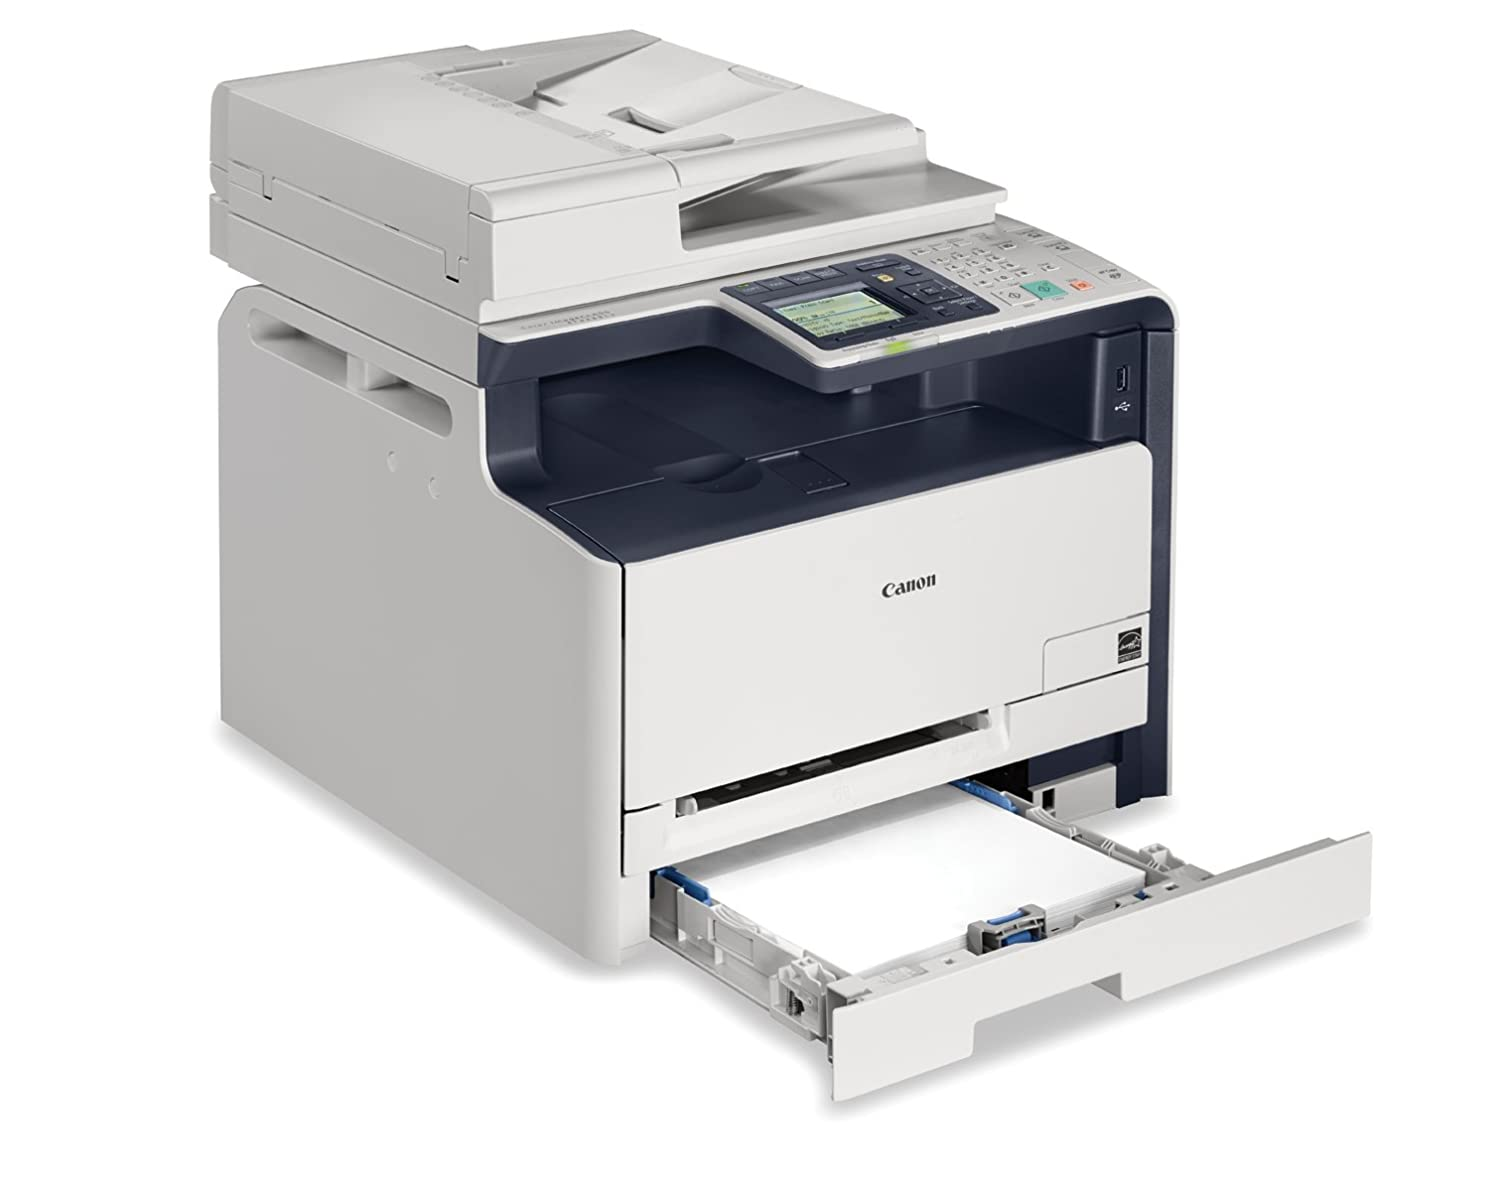 Color printer wireless - Disclaimers